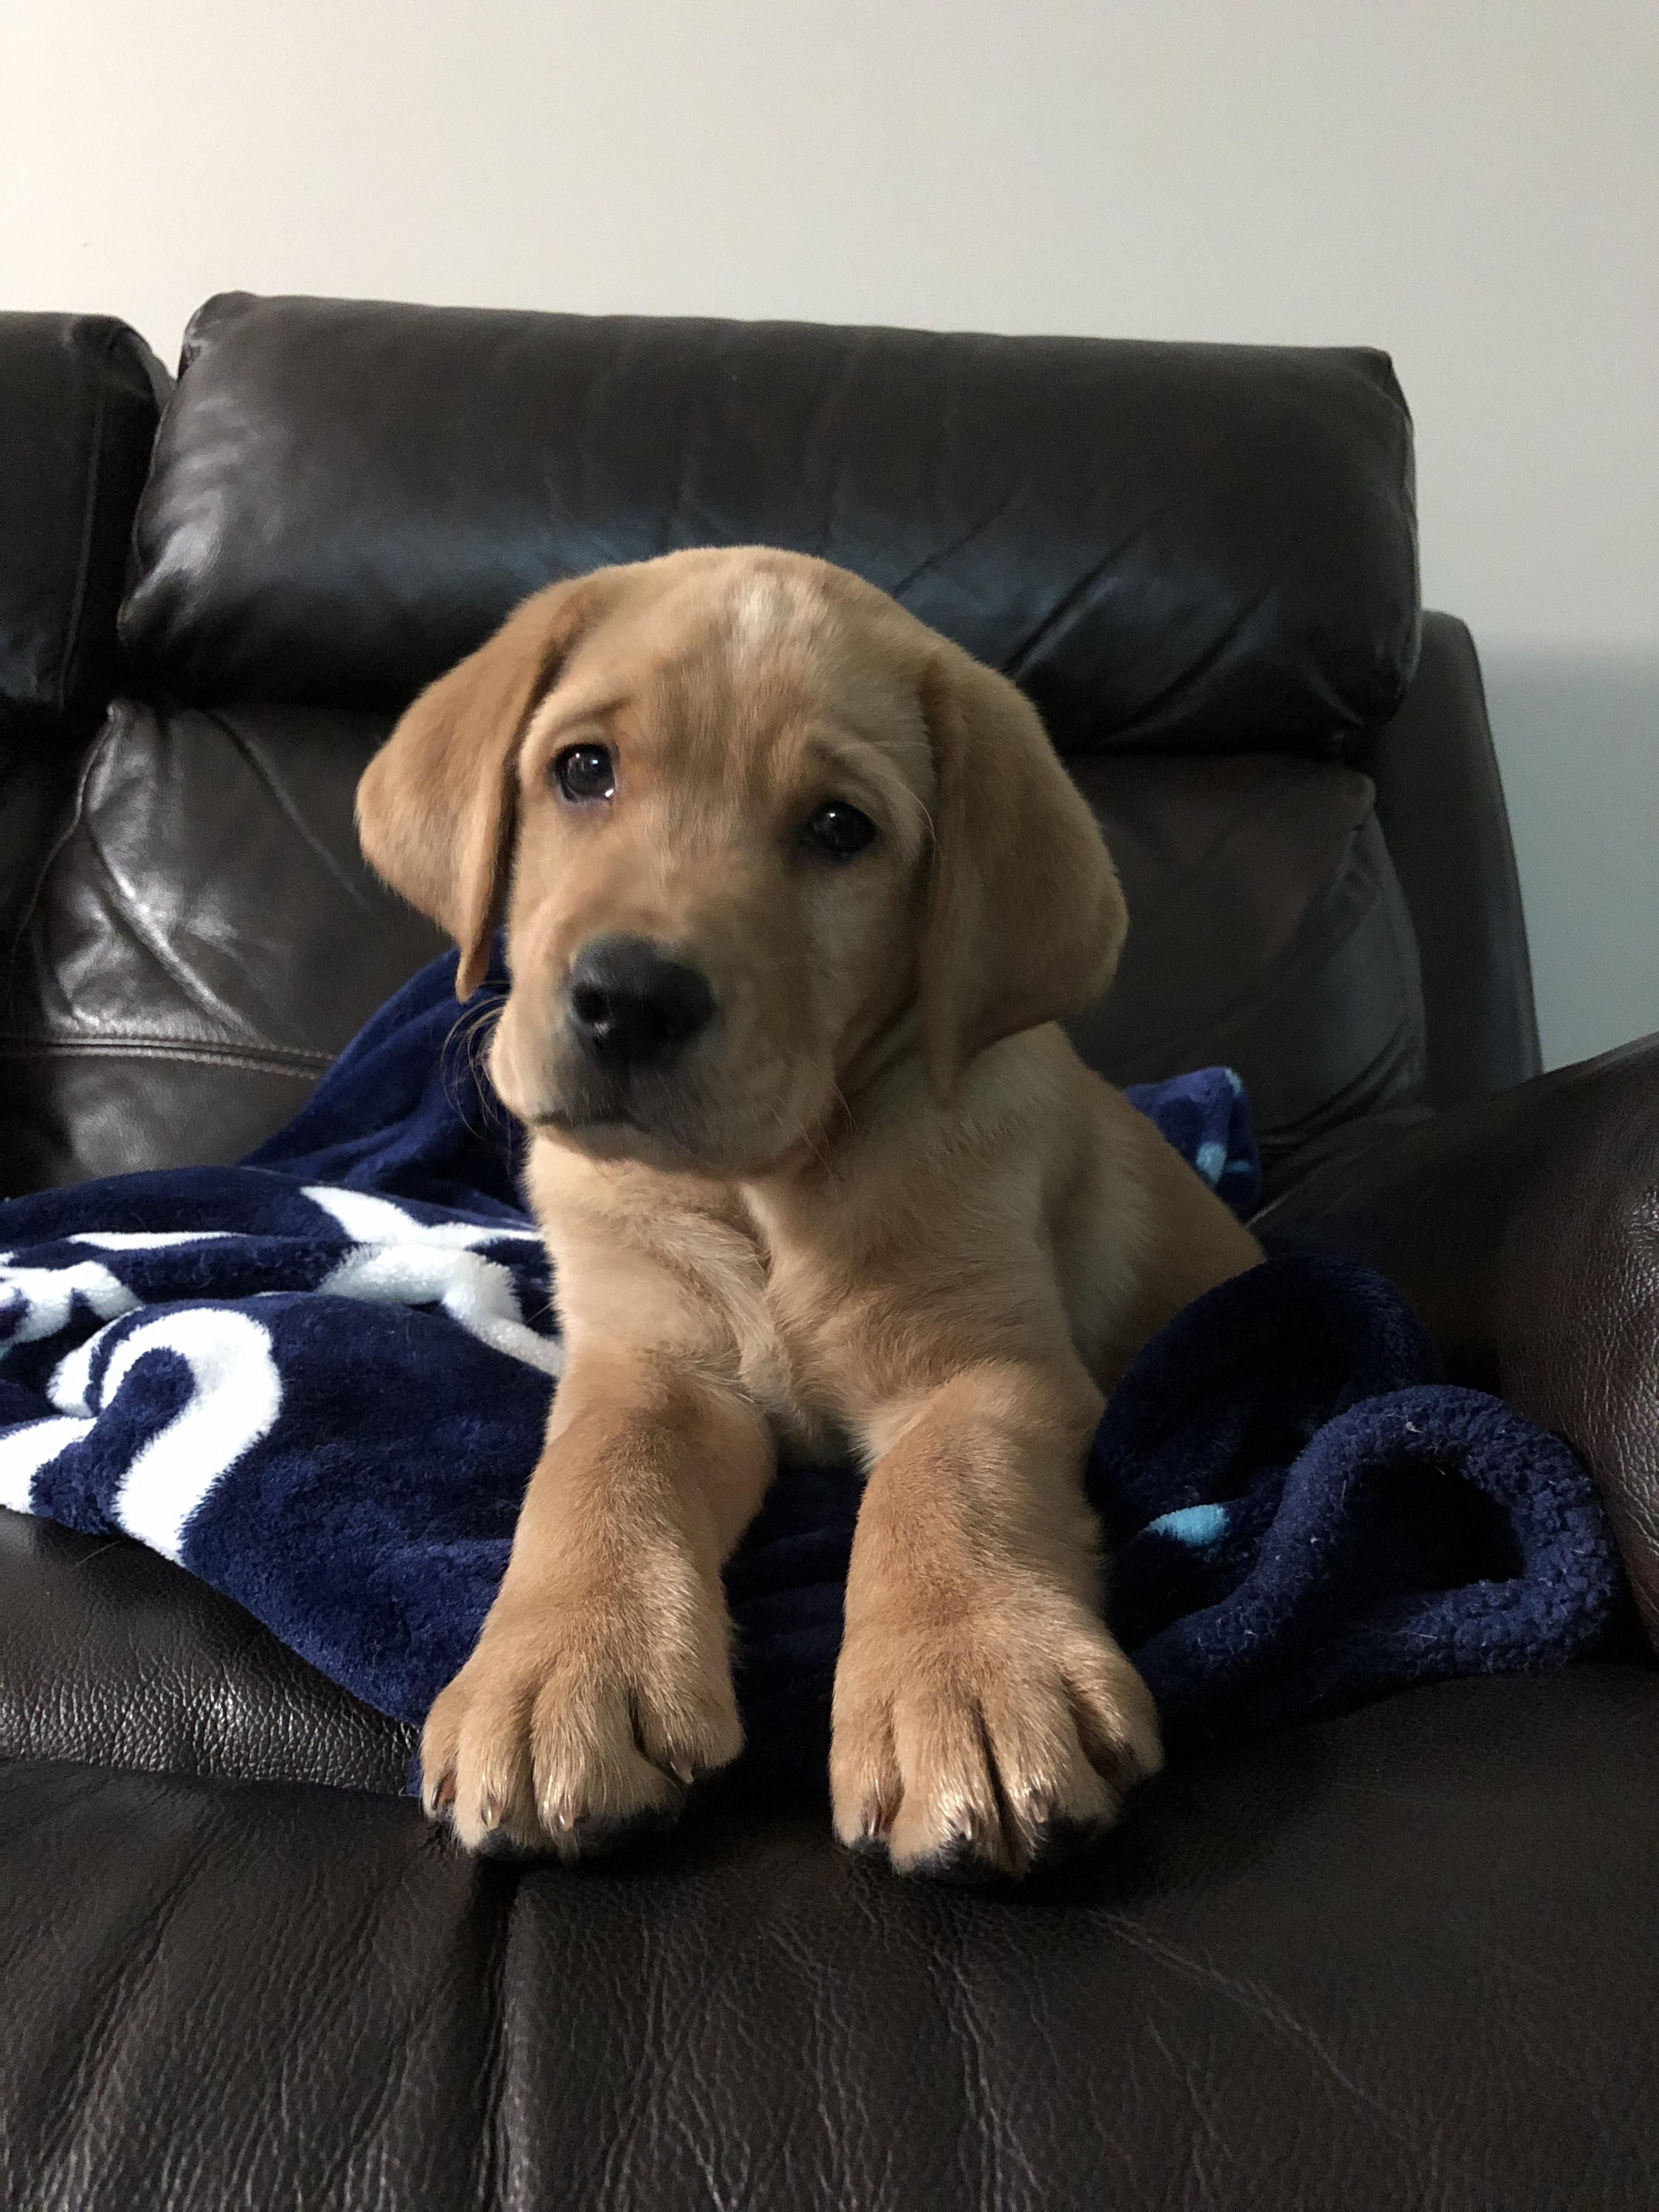 Them Some Big Paws Moose Please Donate Us Hello There Bright People Are You Doglover Or Have You Any Pre Labrador Retriever Lab Puppies Cute Baby Animals